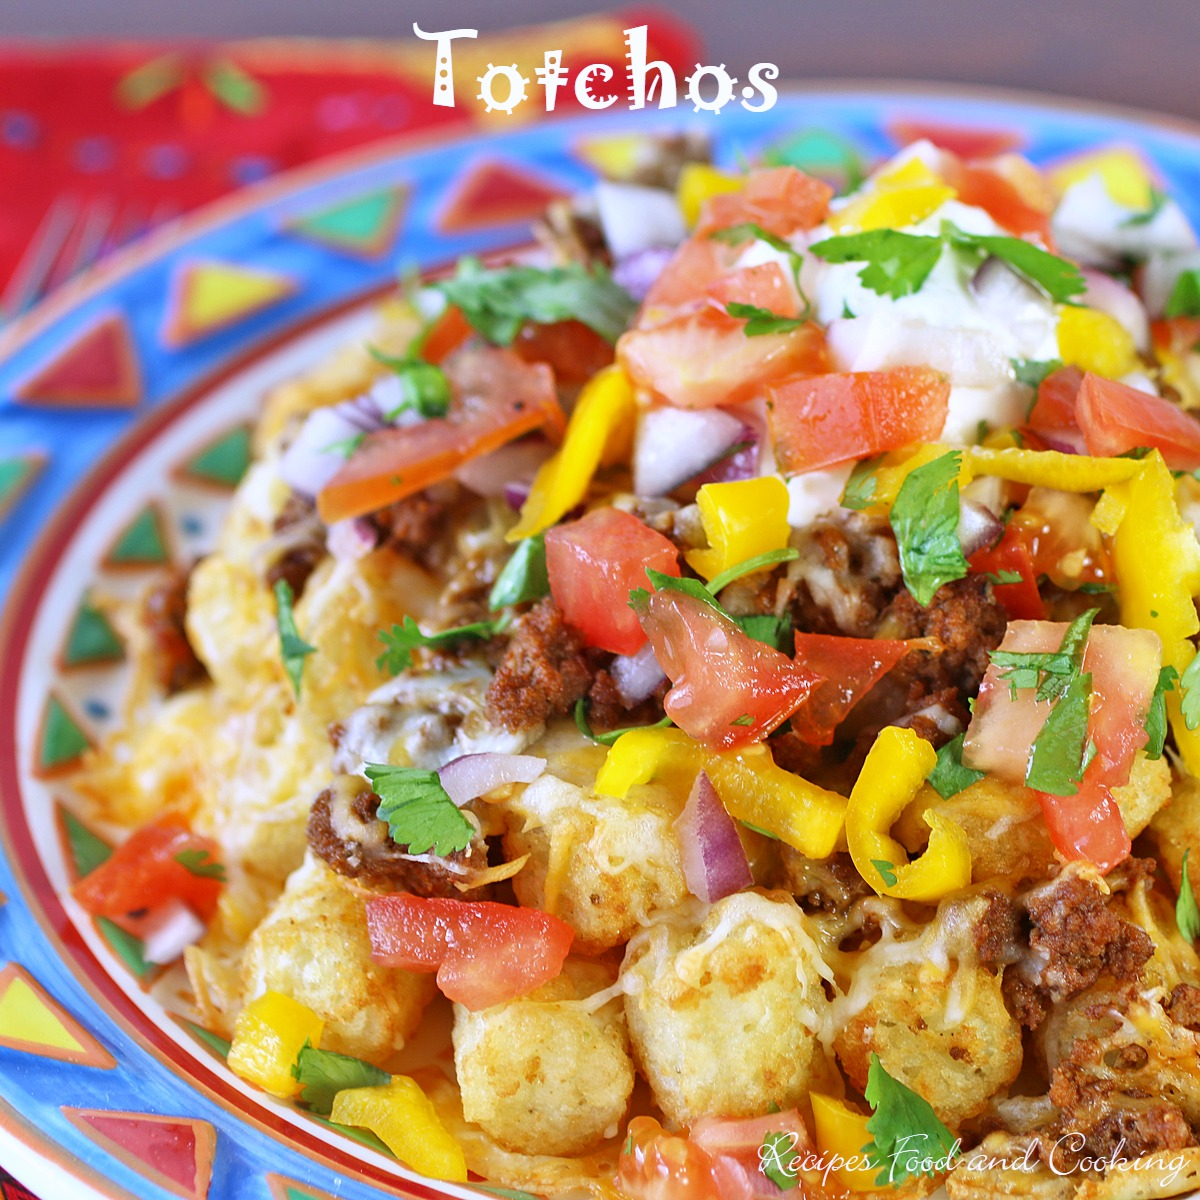 Totchos - Recipes Food and Cooking